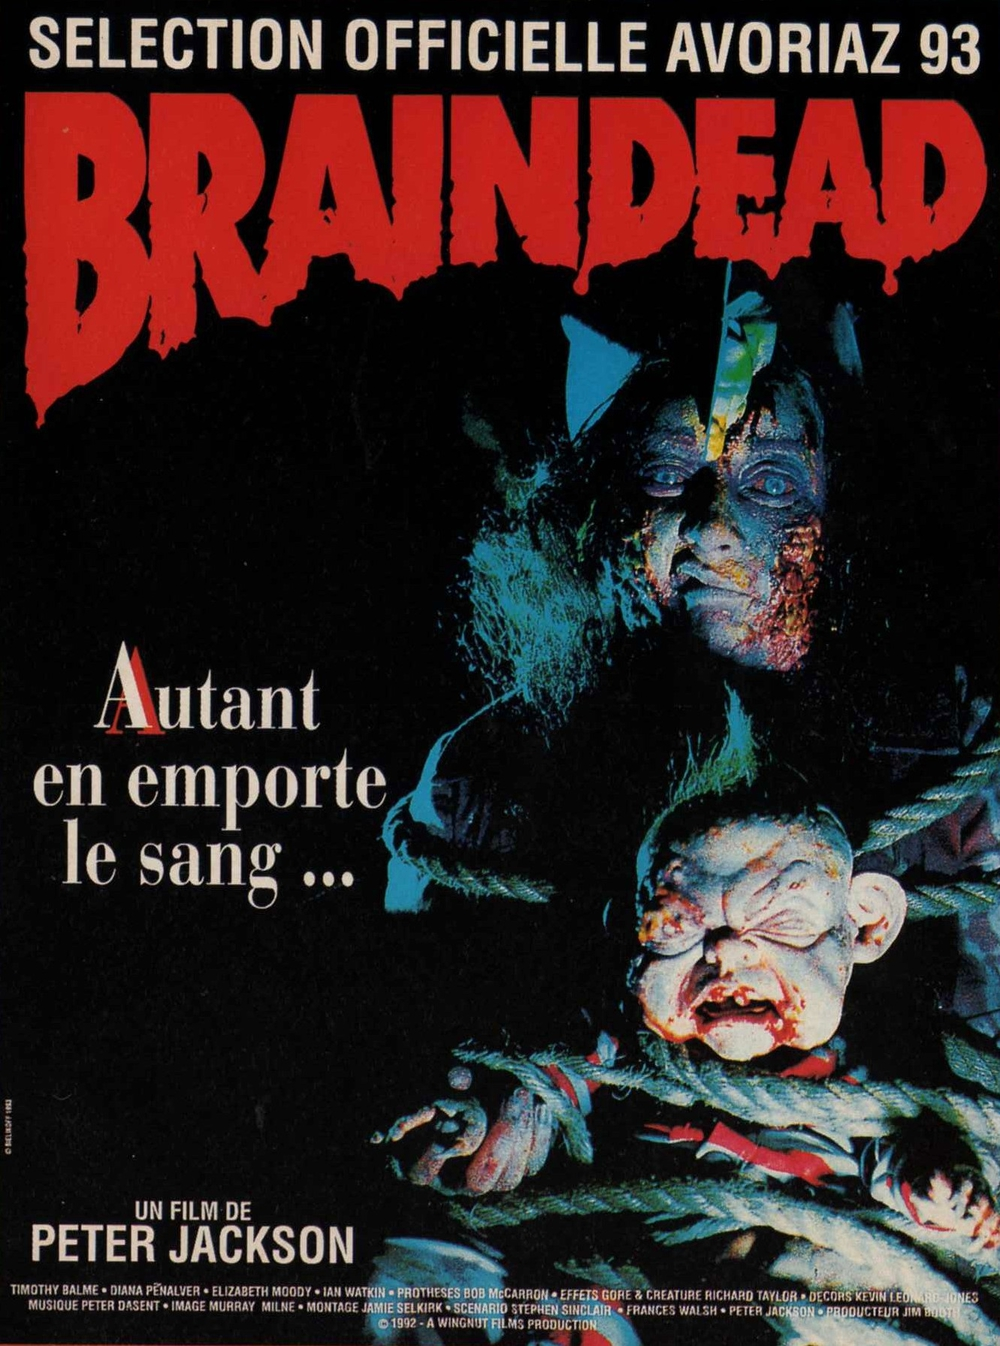 affiche du film Braindead